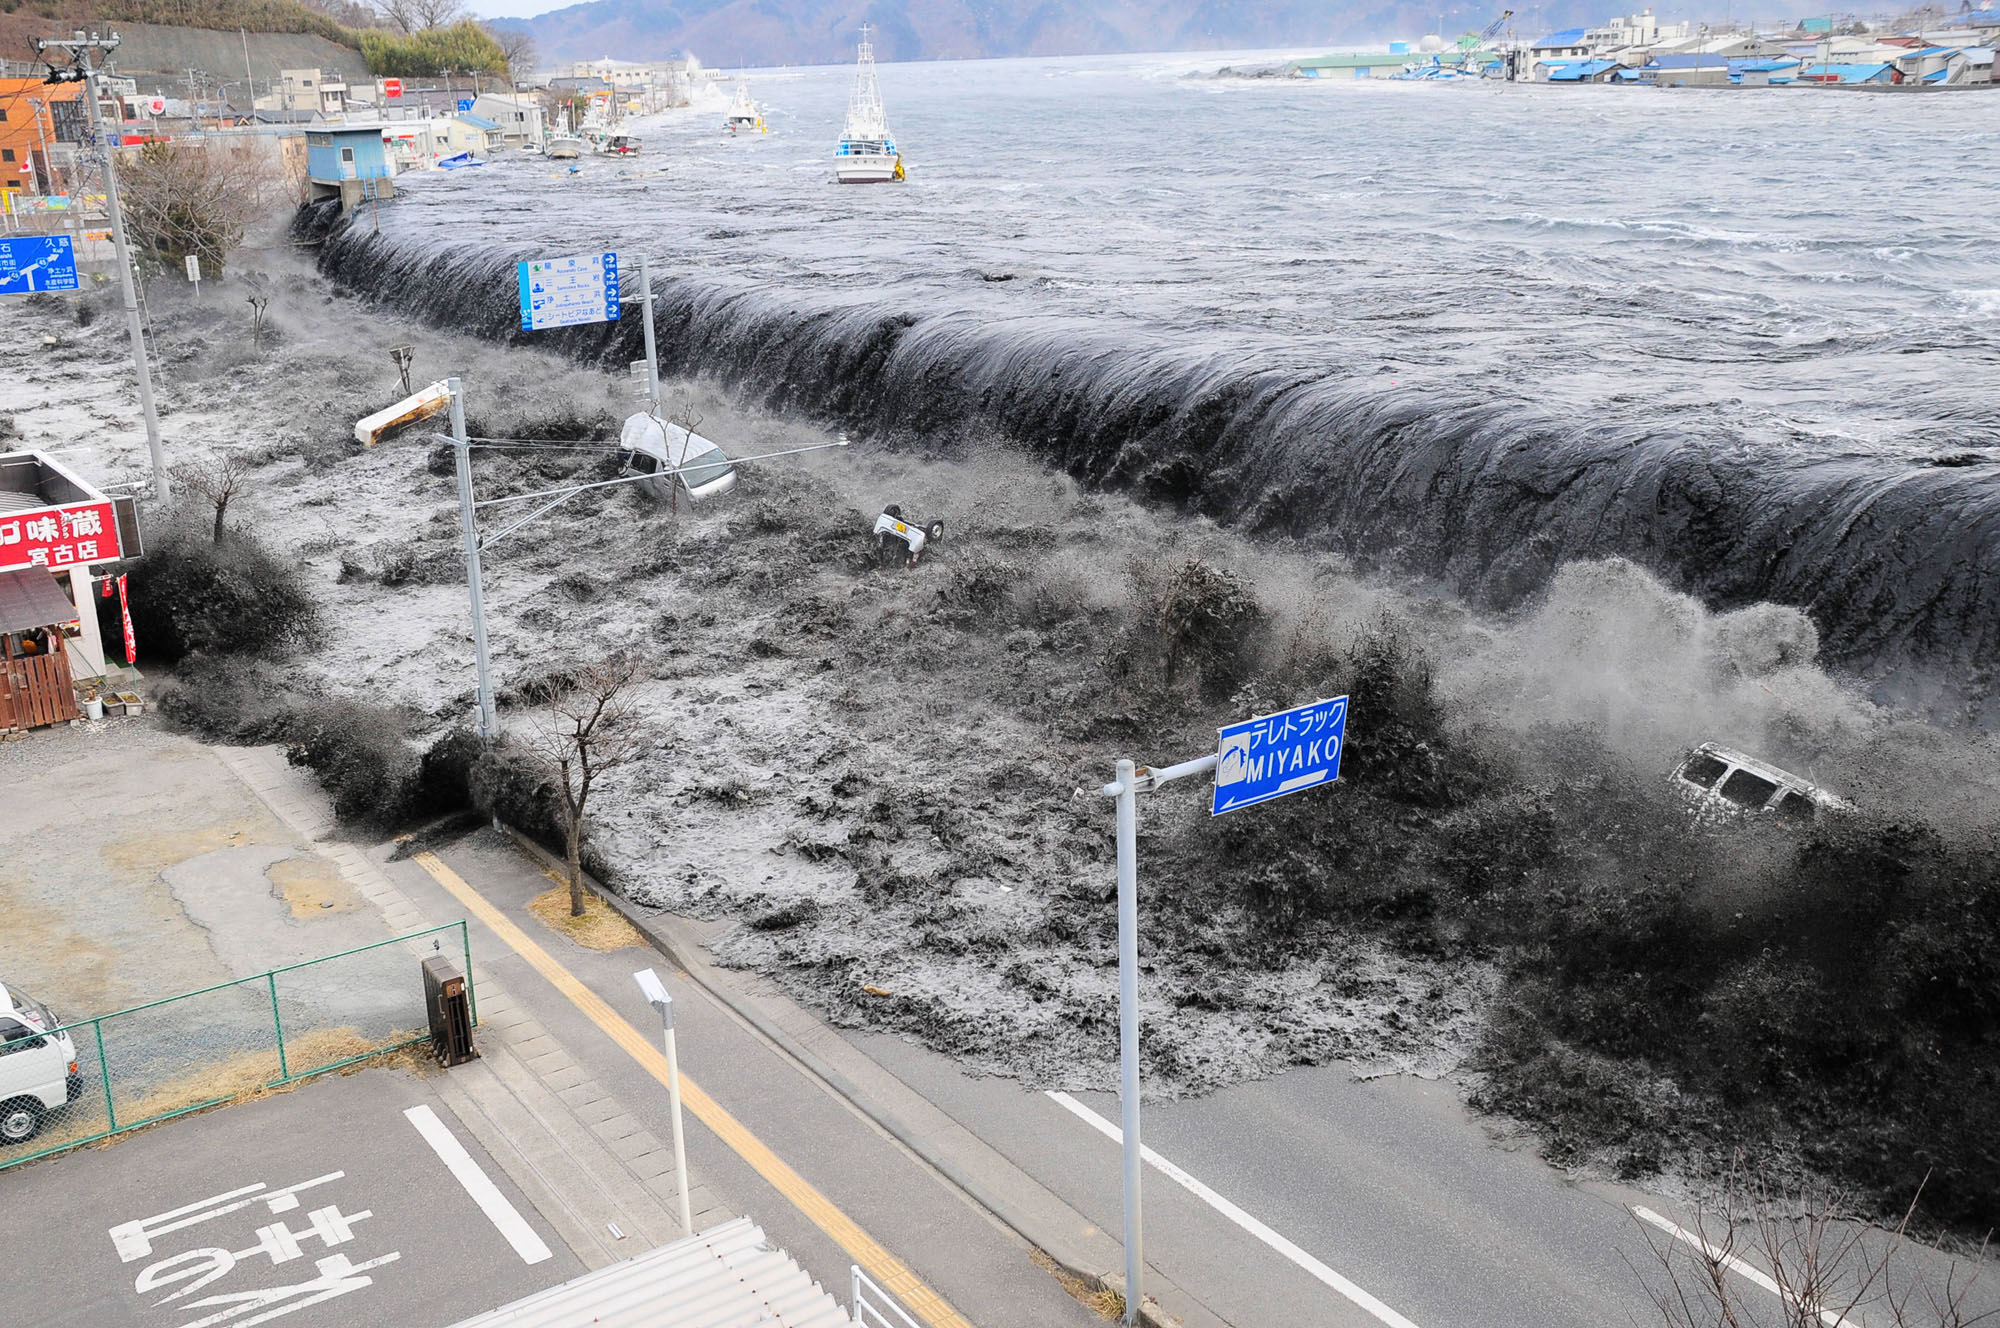 A tsunami hitting the city of Miyako in Iwate Prefecture, Japan, after the magnitude 9.0 earthquake struck the area on the 11th of March, 2011. (Mainichi Shimbun / Reuters)